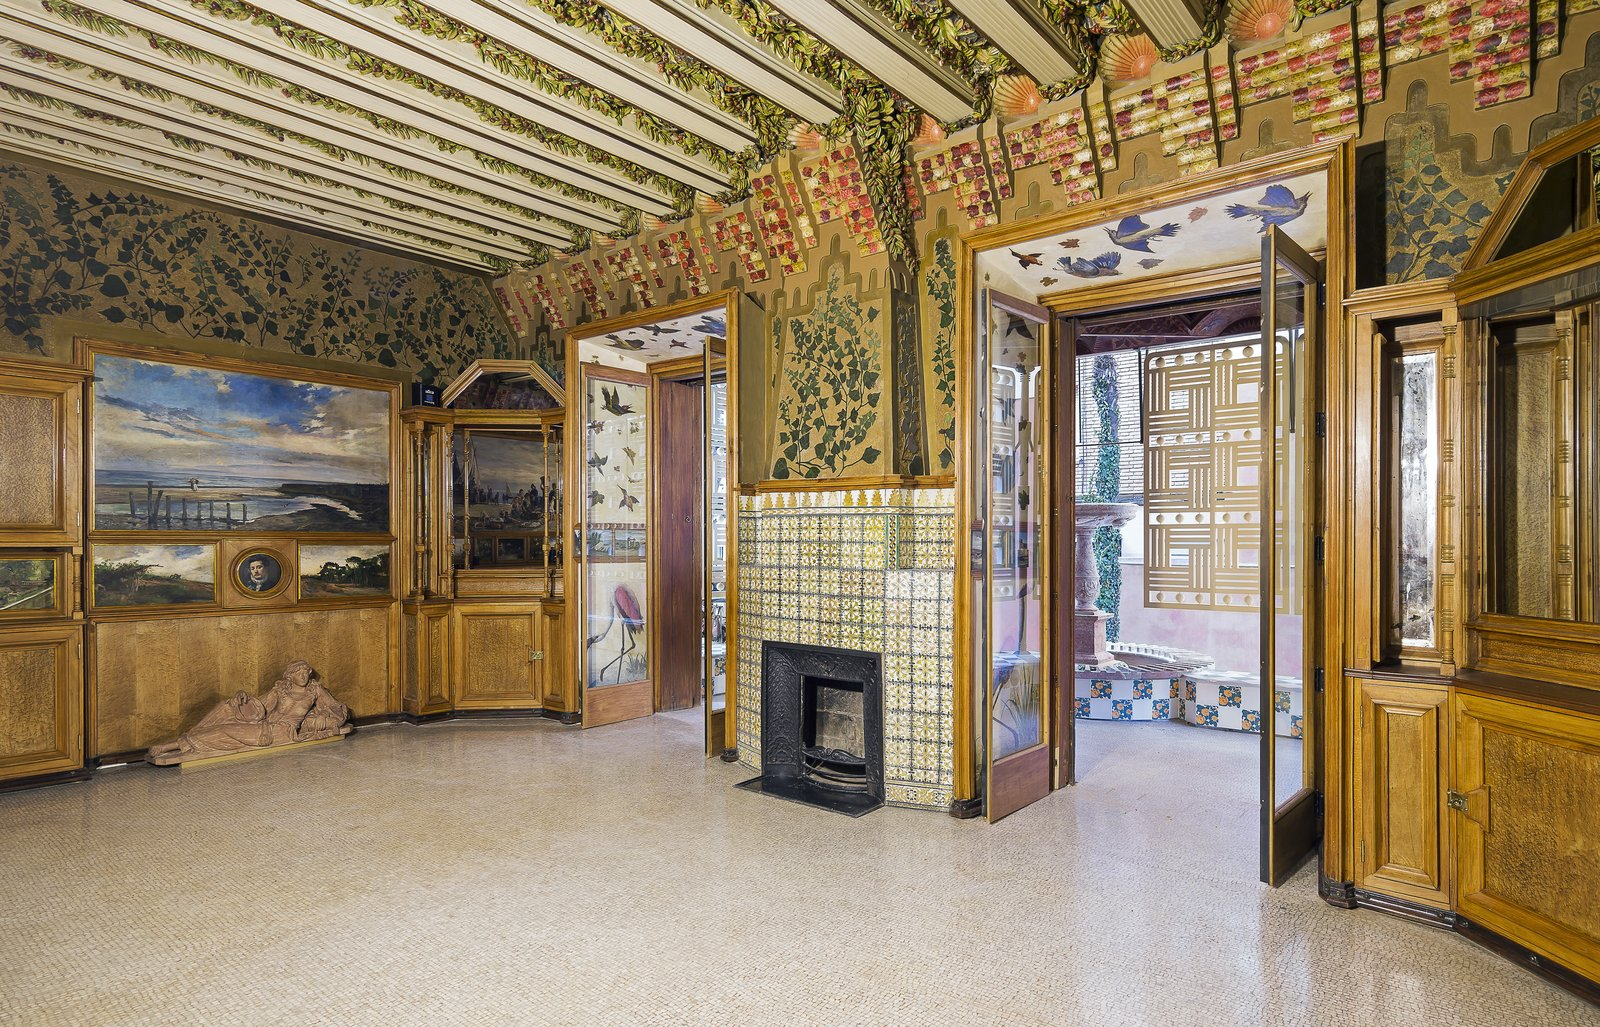 Living Room and Standard Layout Fireplace  Photo 3 of 11 in Gaudí's Fantastic Casa Vicens Opens to the Public For the First Time